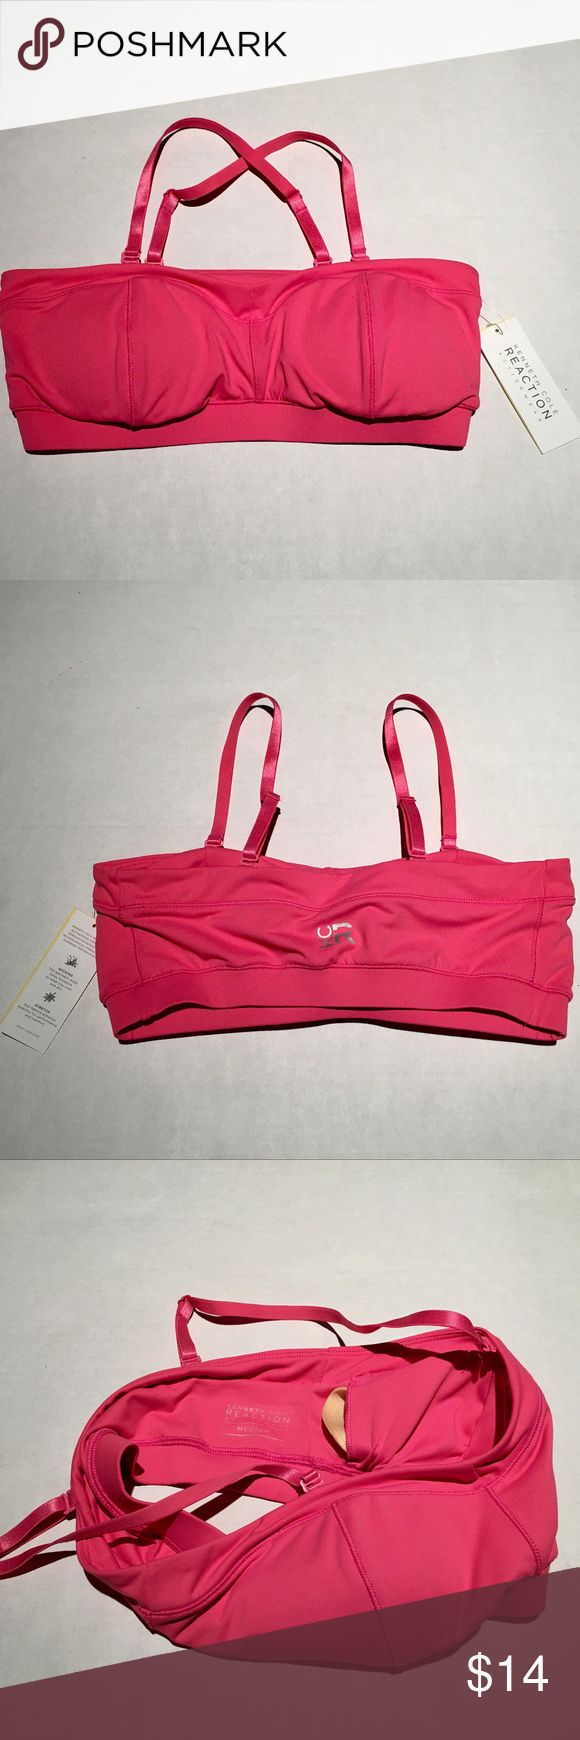 "NWT😍😘KENNETH COLE REACTION BANDEAU SPORTS BRA 💞💖💝 Super cute, stylish and comfy, with great support!   * 4 way stretch fabric enhance mobility for performance and comfort. * Built-in moisture wicking to keep you cool and dry while workout. * Removable pads provide options of support.  * Adjustable straps can be converted to criss cross style, or detach to transform to a bandeau bra.   * Fabric Content- 88/12 Poly/Spandex ( Factory Sample )  * Measurements- 12 1/2"" Bottom Open Kenneth…"